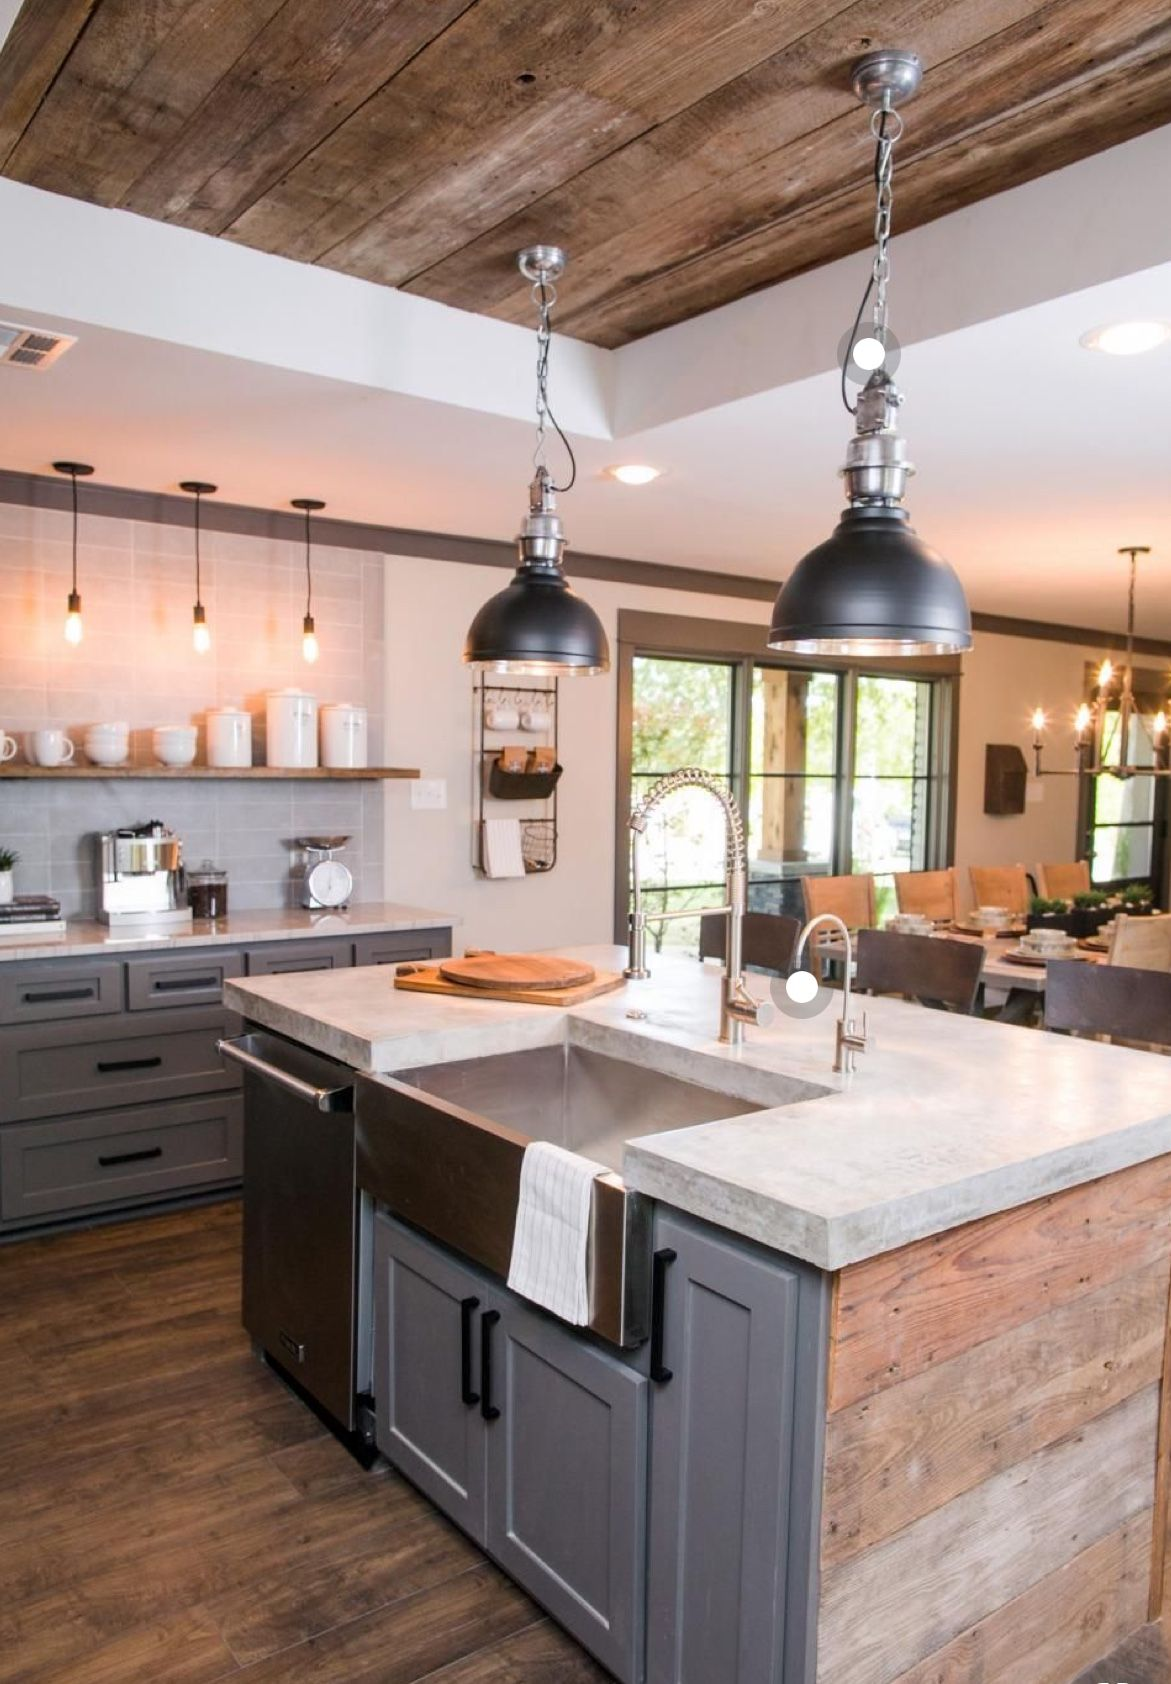 Kitchen With Wood Floors Ceilings Painted Cabs Rustic Island Sink